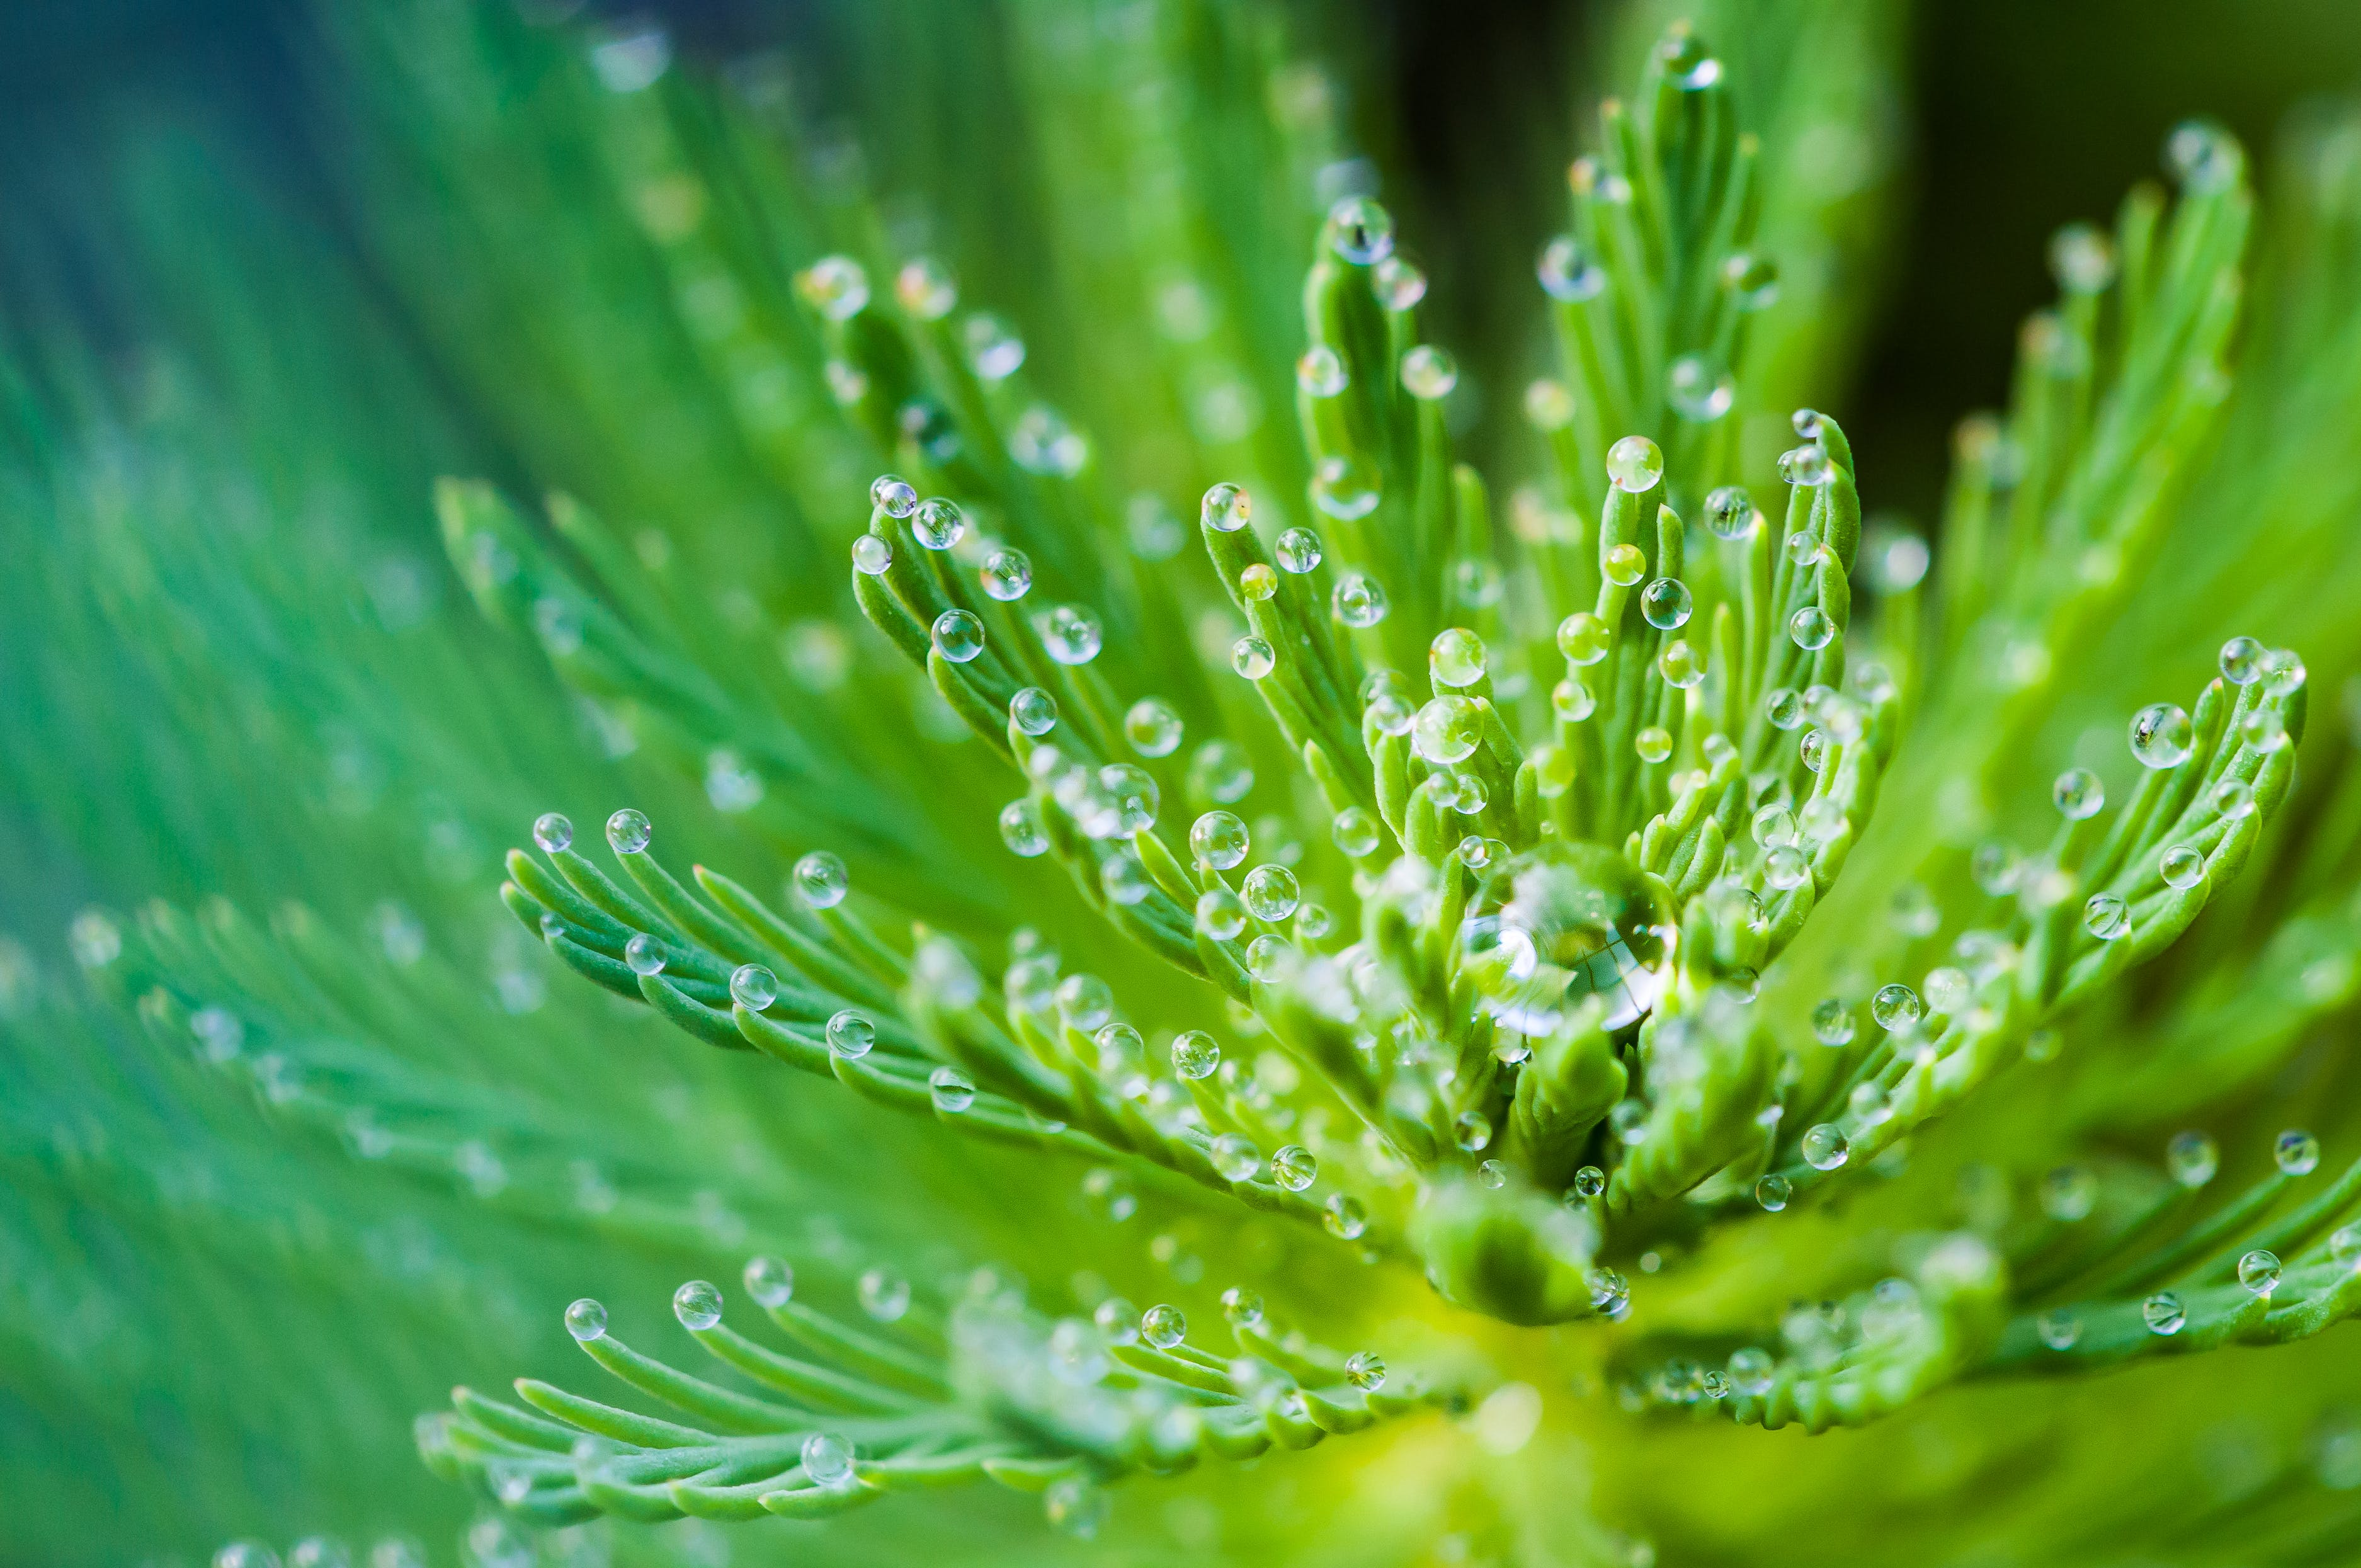 Water Droplets on Green Leaf Plant